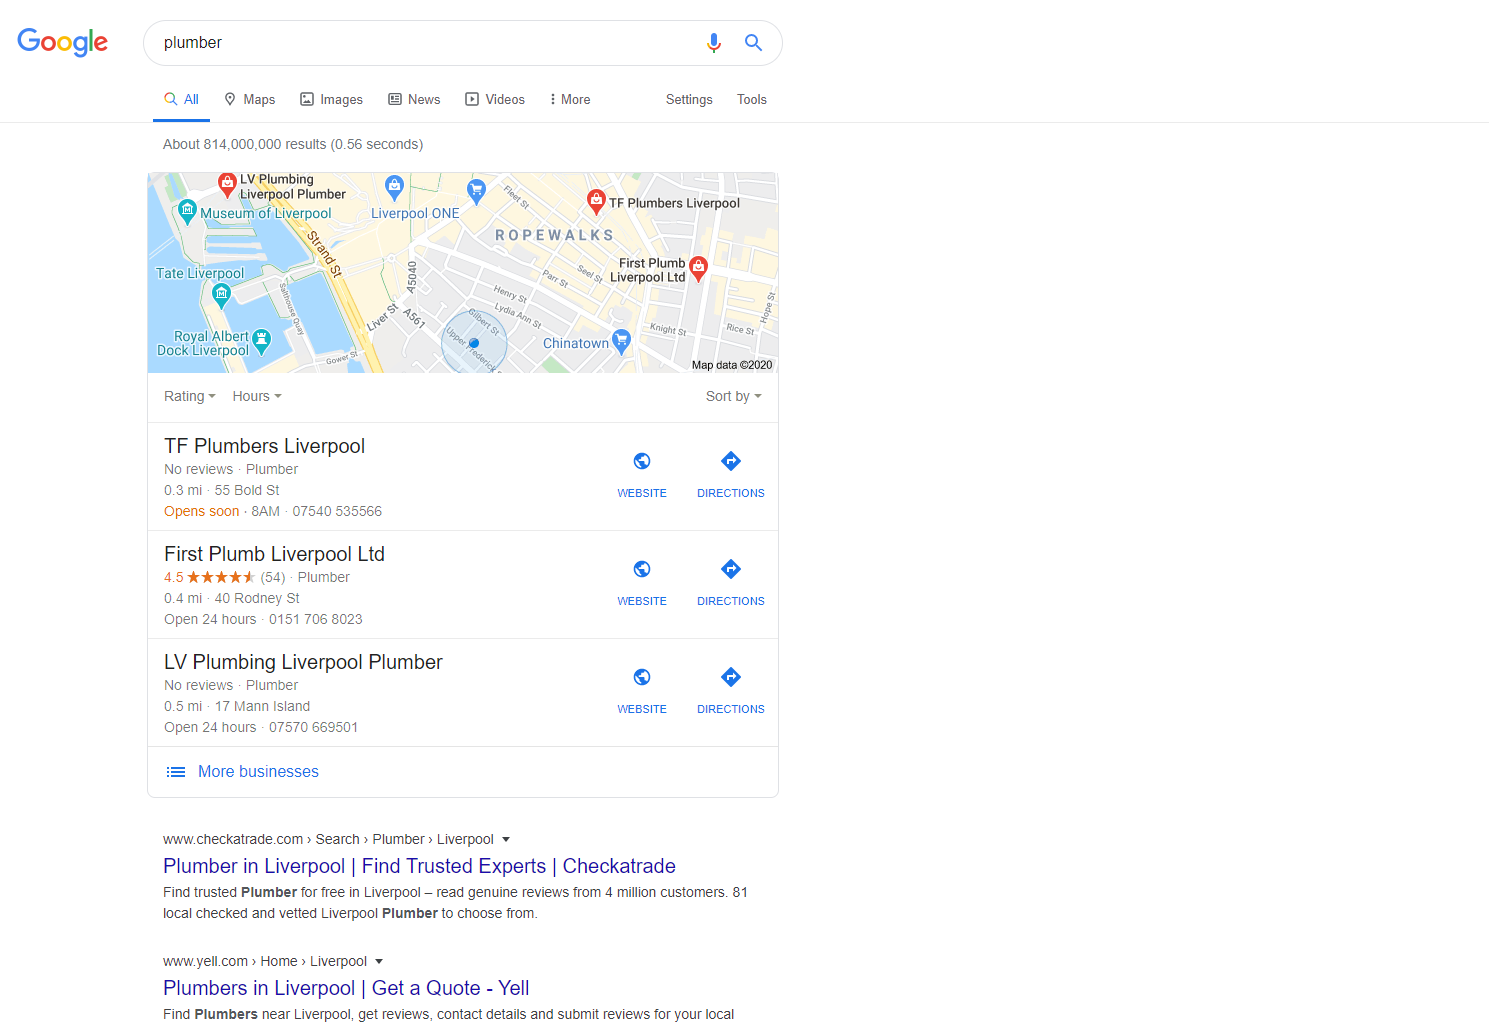 Search engine result for plumber in Liverpool